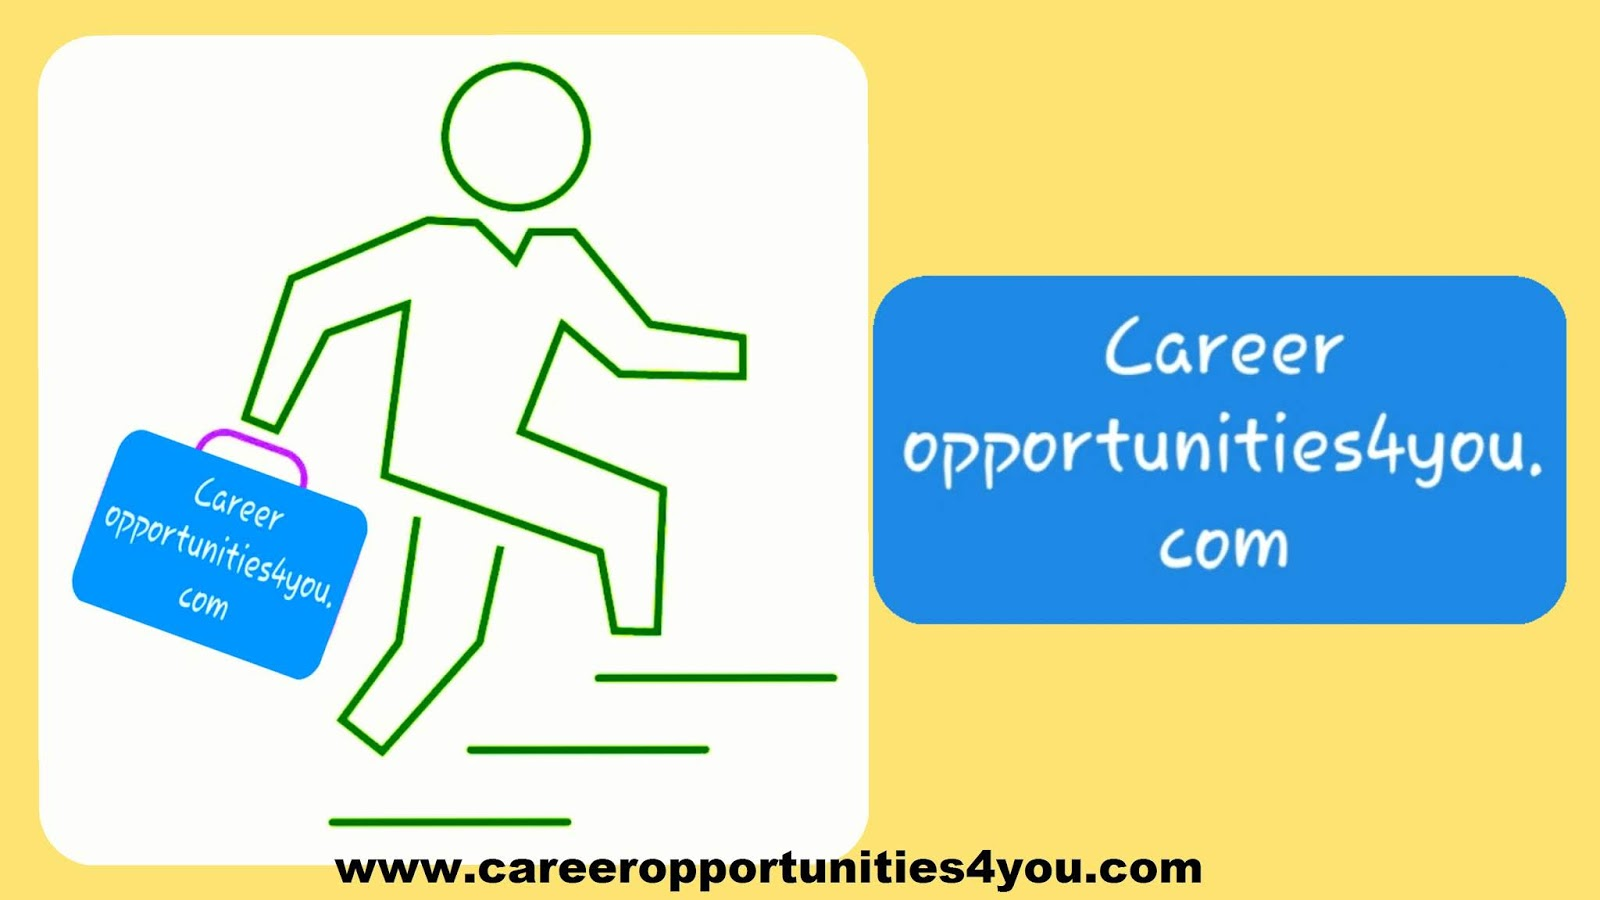 May 2019 - Career Opportunities4you